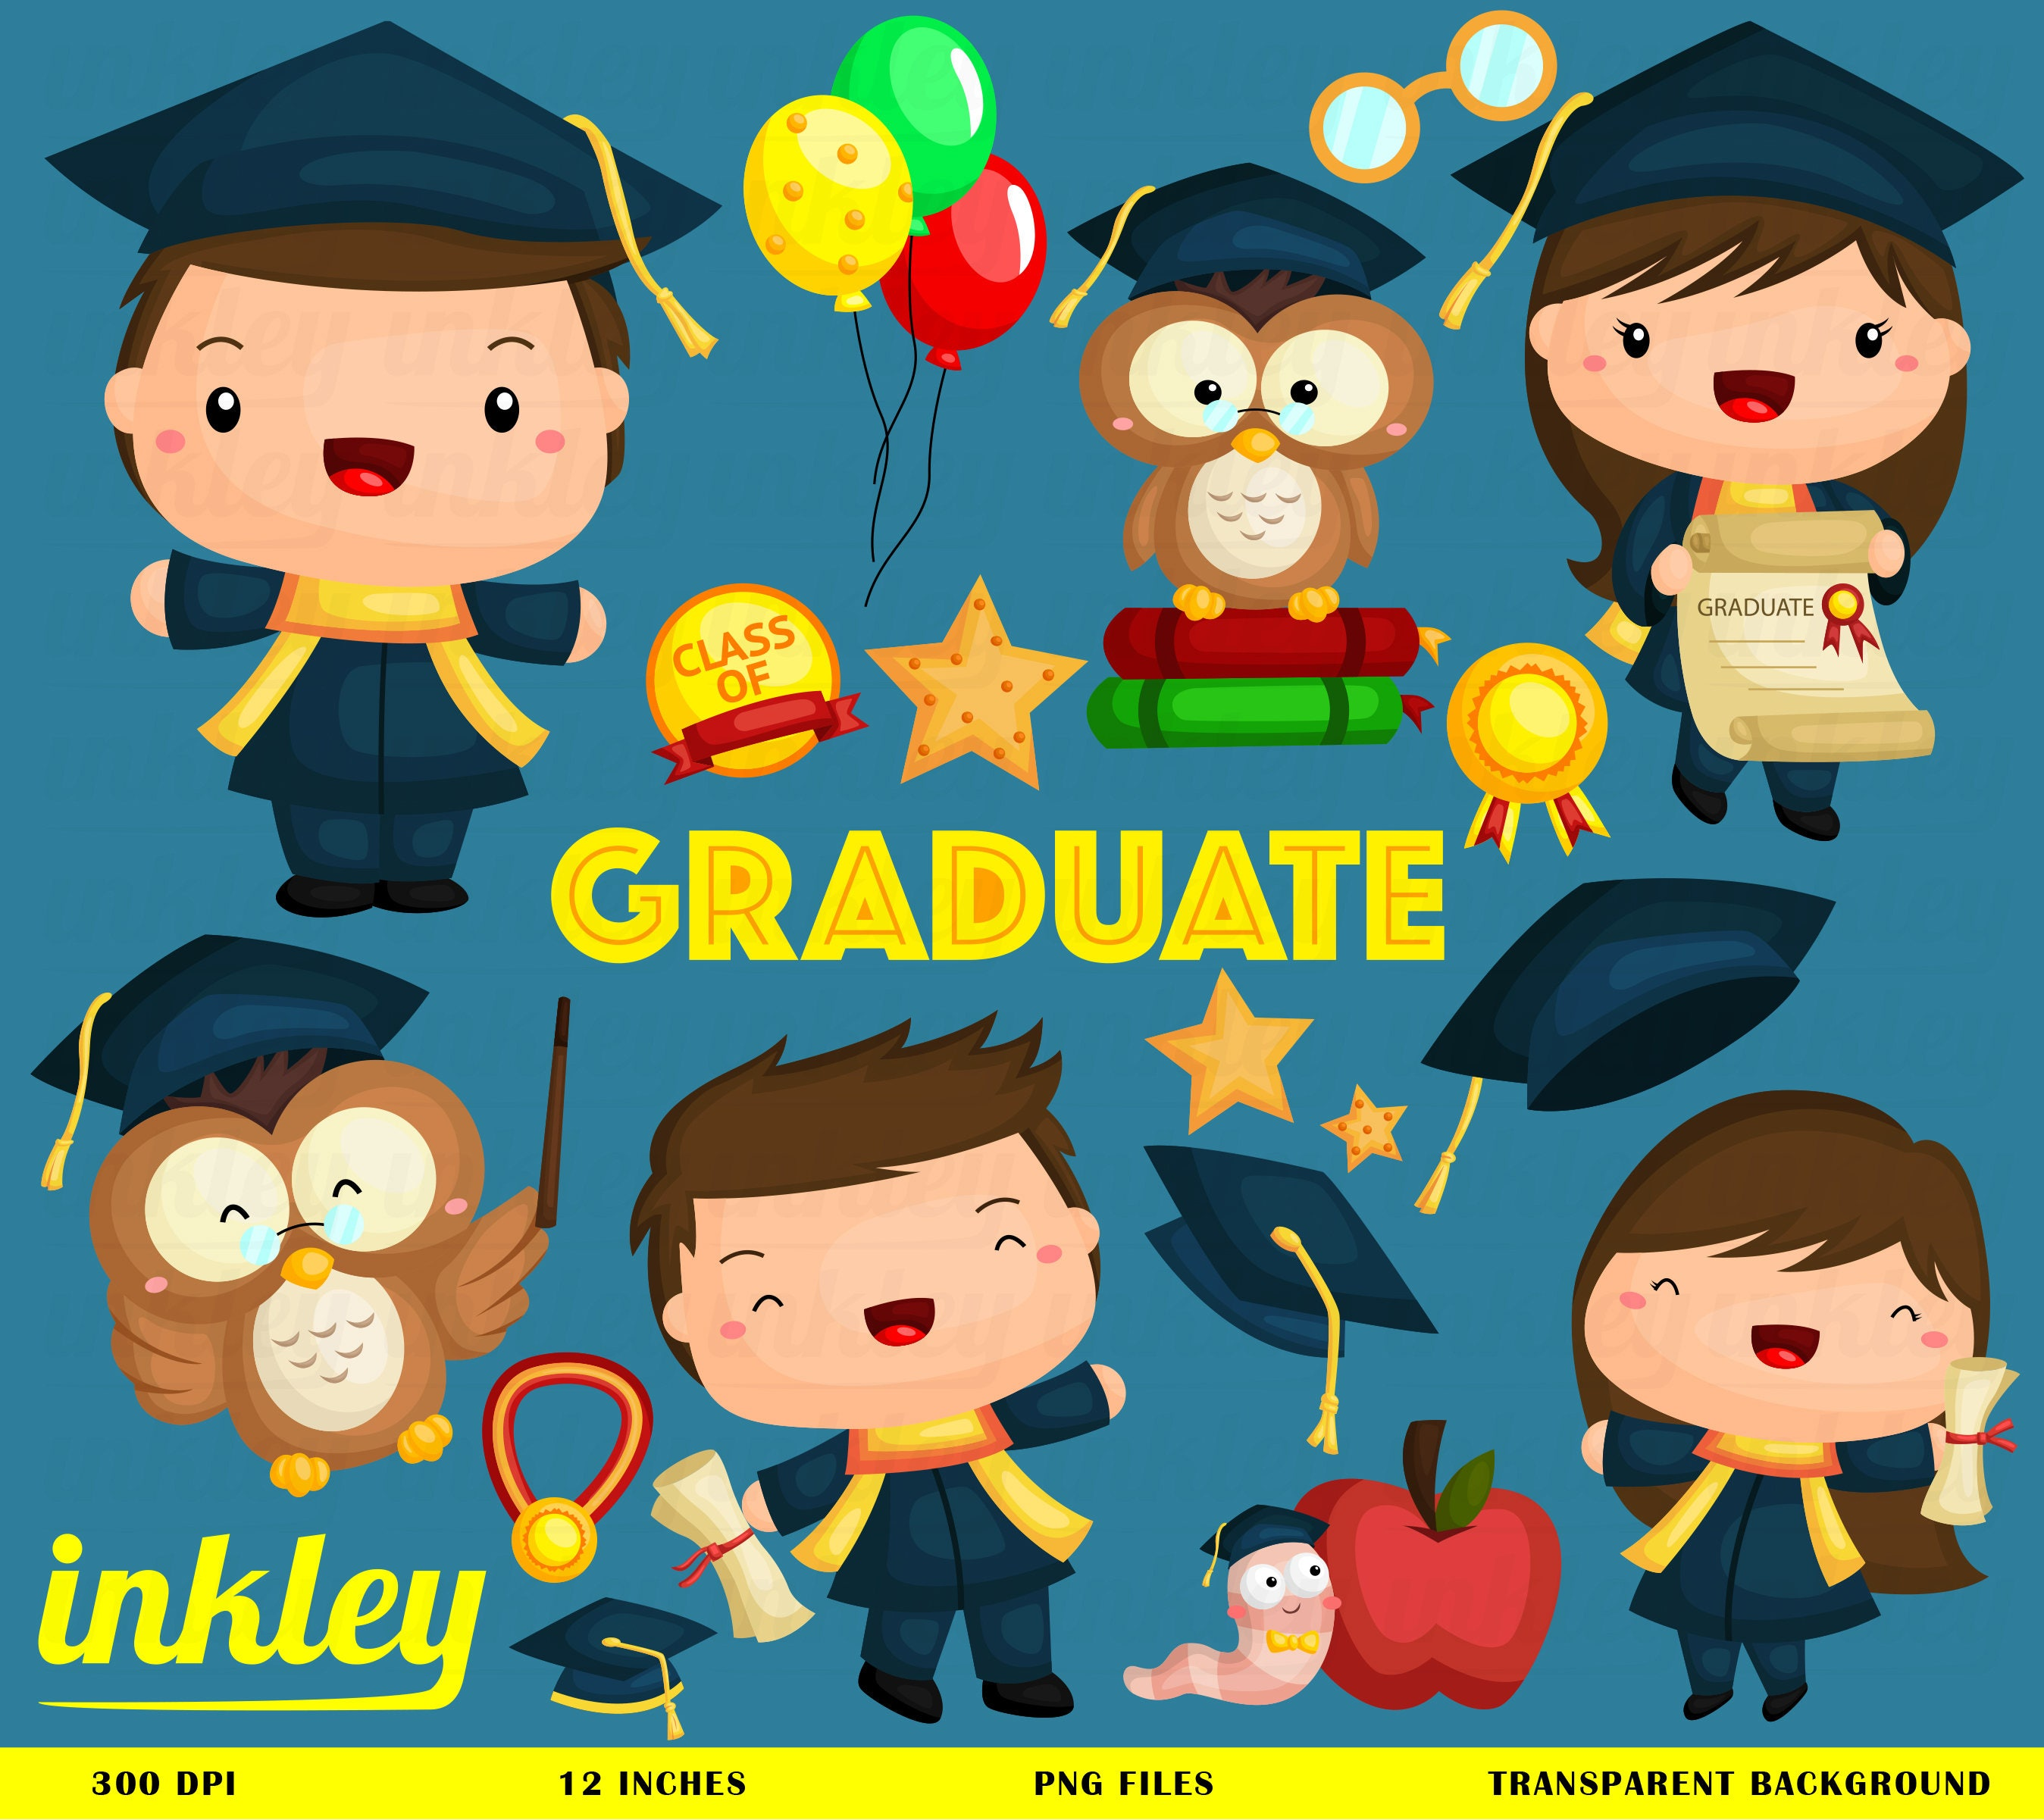 Graduation Clipart Graduation Clip Art Graduation Png